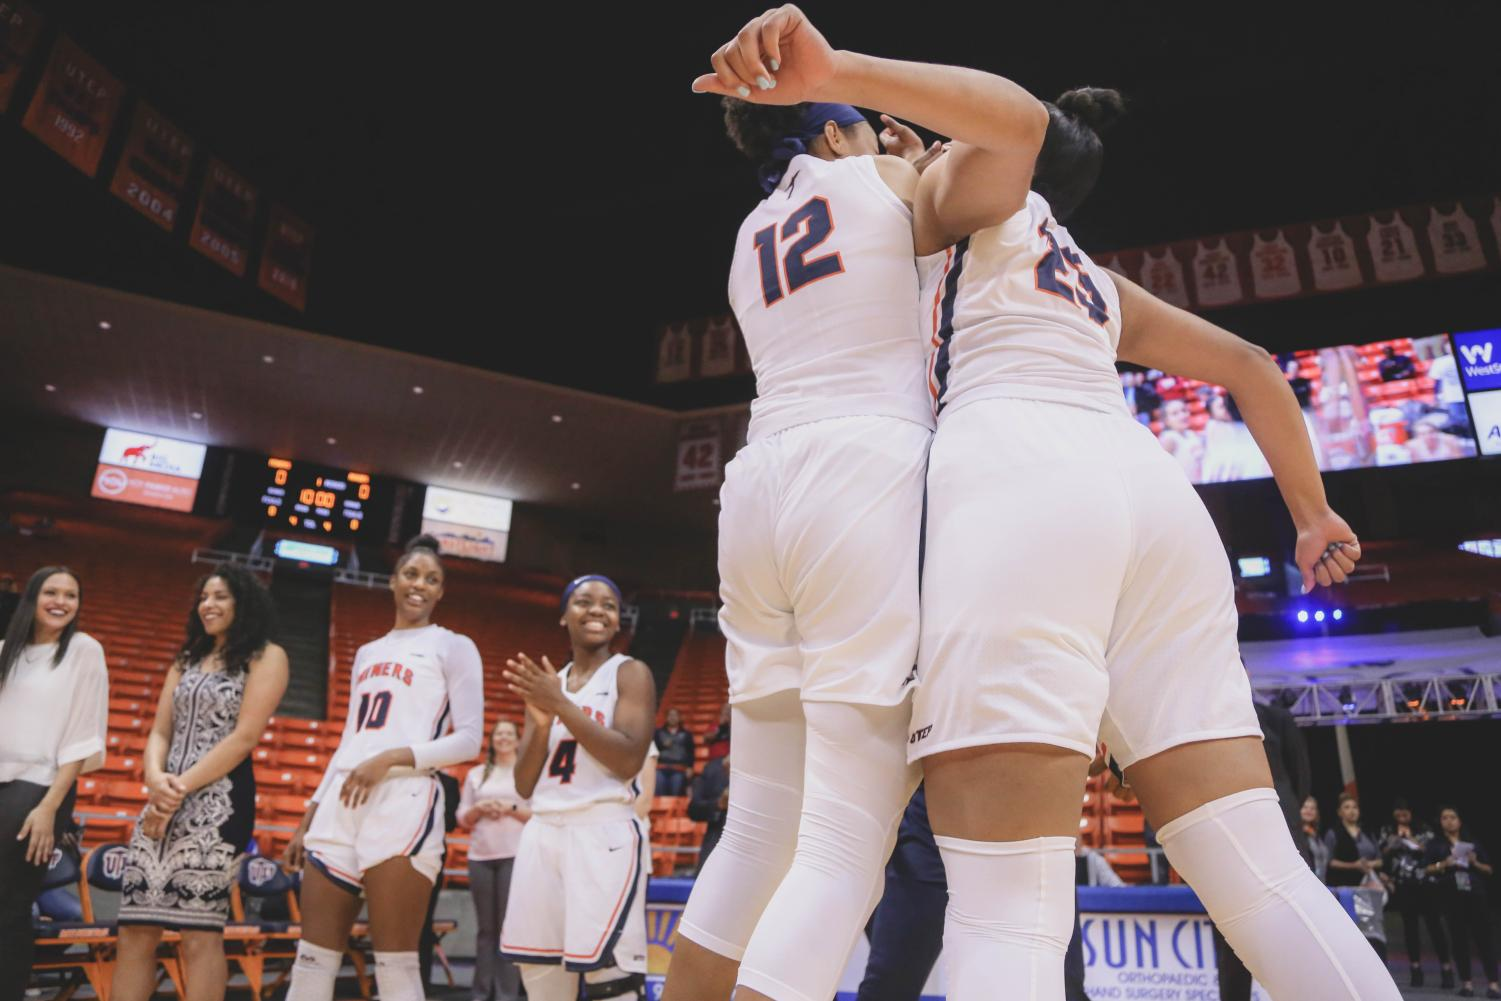 Junior+guard+Ariona+Gill+is+introduced+pre-game+at+a+game+against+the+NMSU+Aggies+on+Saturday%2C+Nov.+17.+